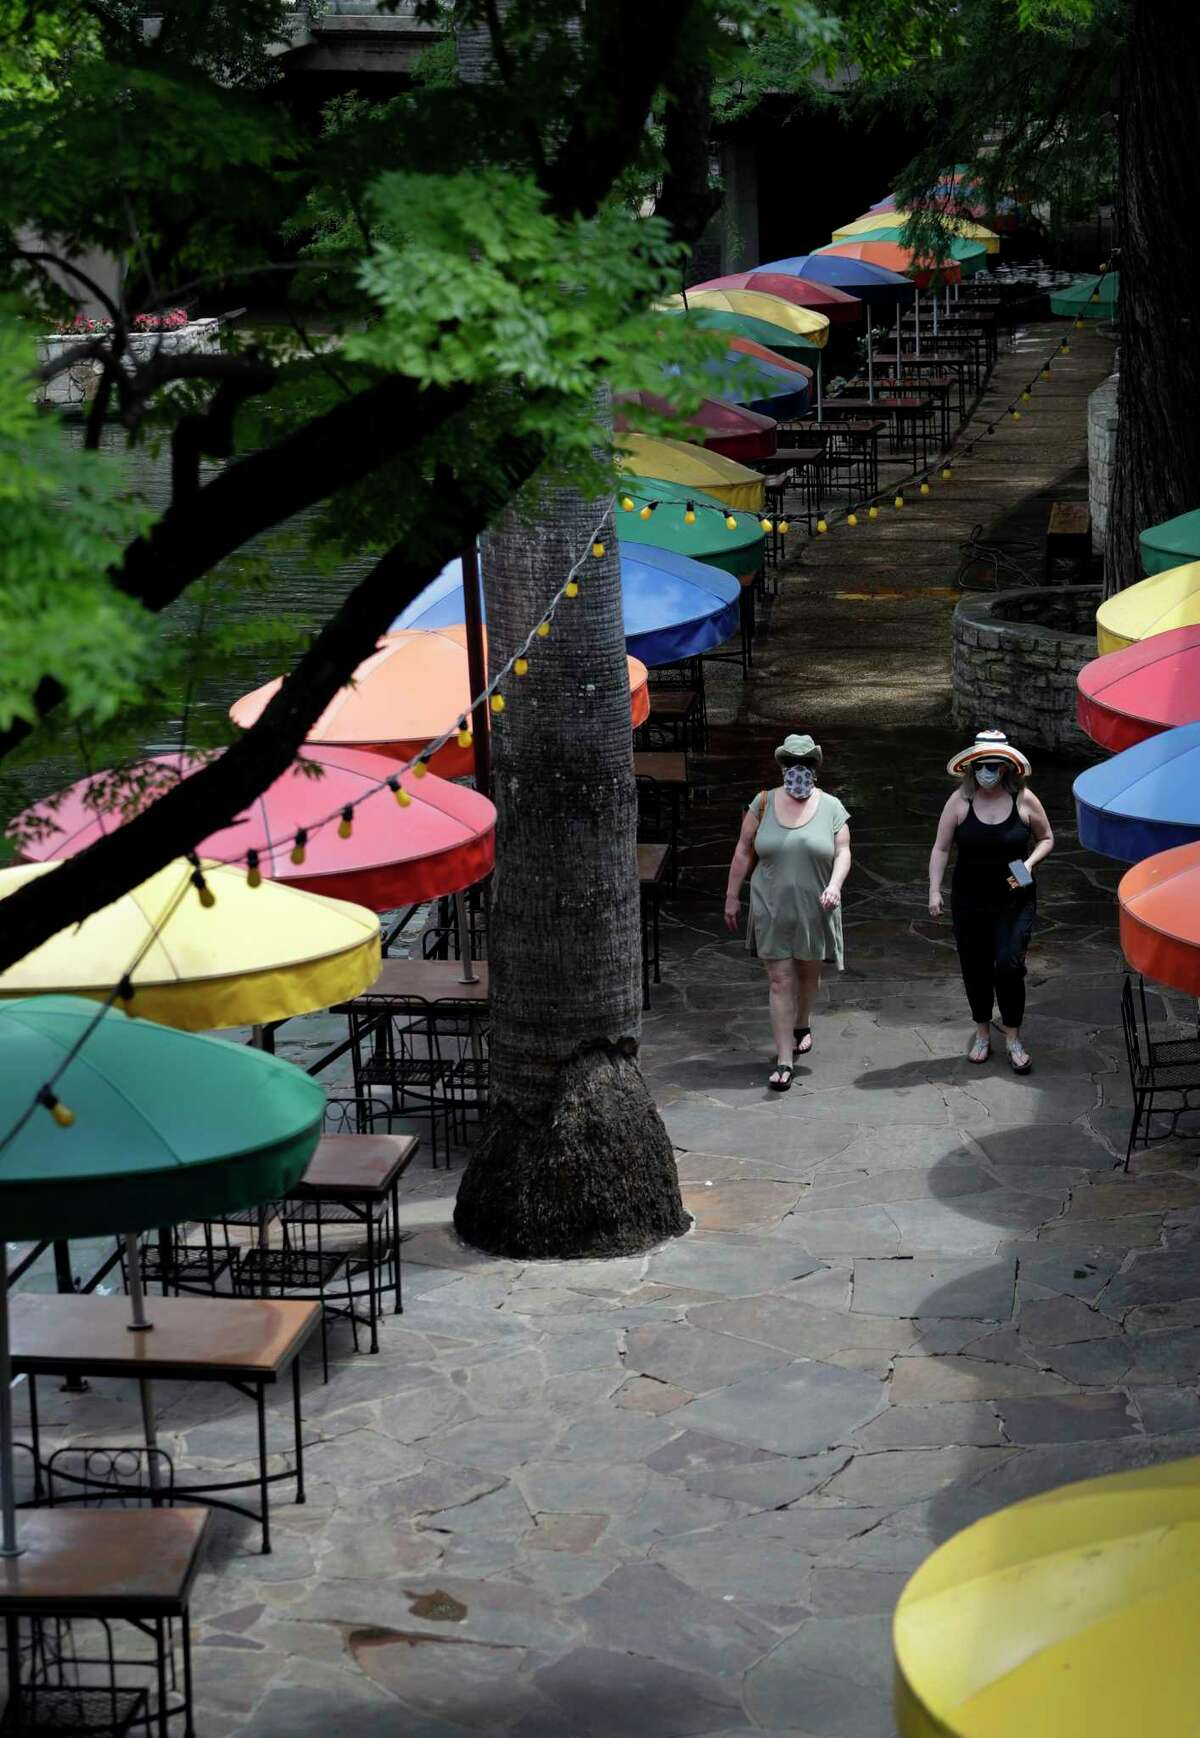 Visitors walk past a restaurant on the River Walk that is preparing to open soon, Tuesday, May 12, 2020, in San Antonio. The restaurant has been closed due to the COVID-19 pandemic and will open with limited seating and make use of social distancing practices. (AP Photo/Eric Gay)